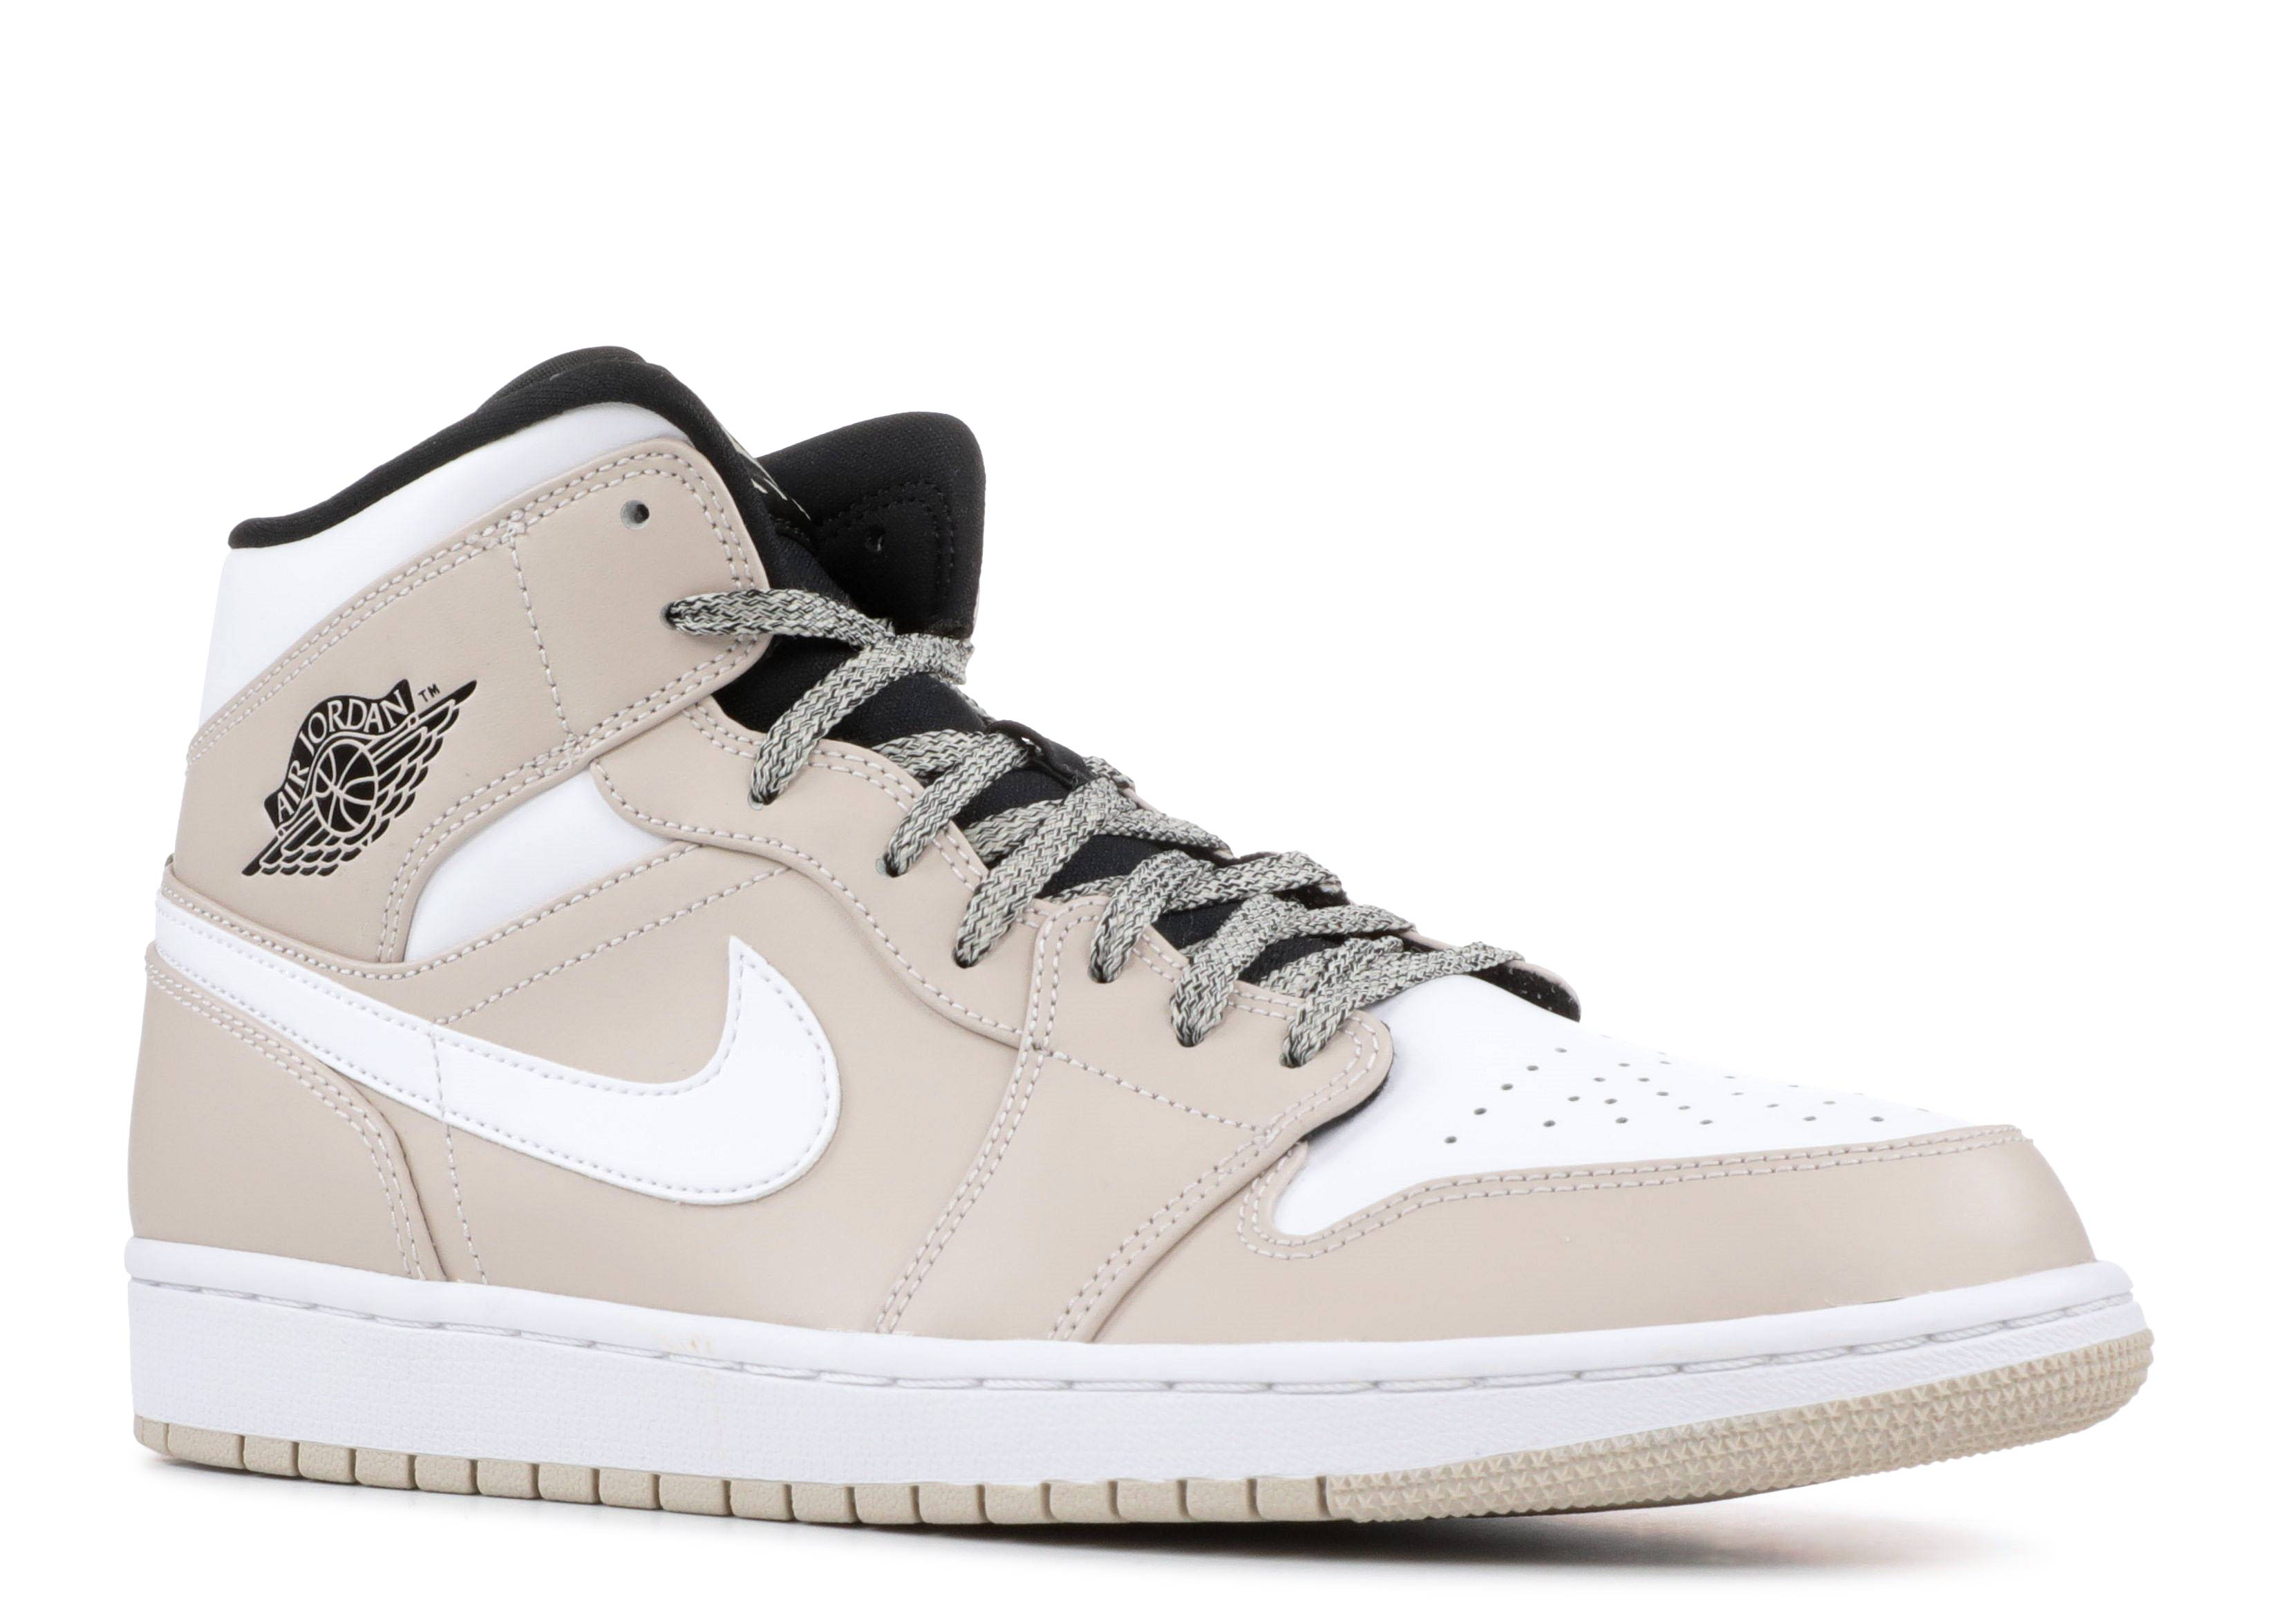 separation shoes d38f5 c083f AIR JORDAN 1 MID - Air Jordan - 554724 047 - desert sand  white -black    Flight Club